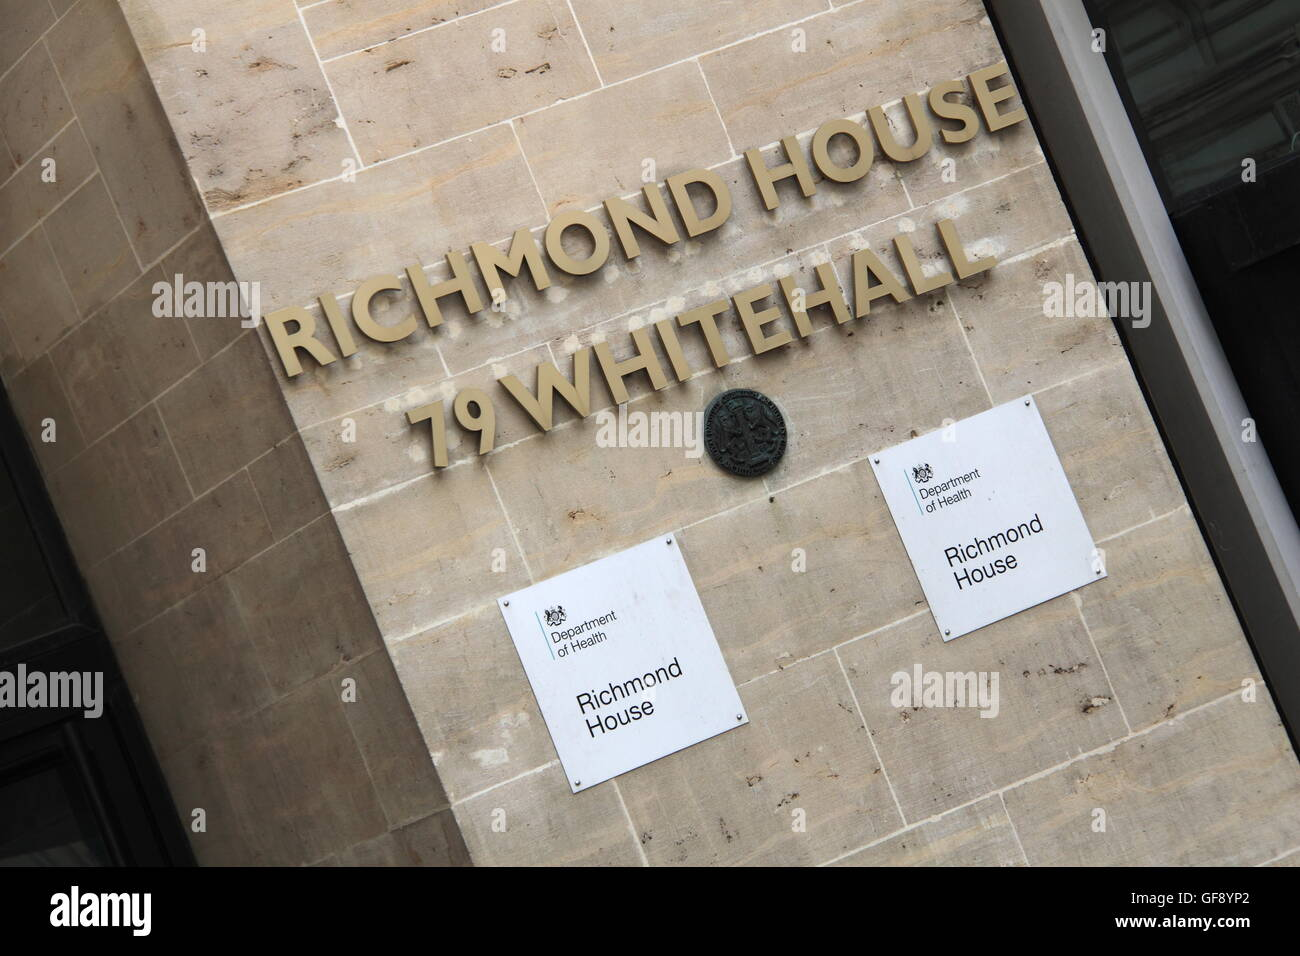 Department of Health, Richmond House, Whitehall, London, England, Great Britain, United Kingdom, UK, Europe - Stock Image